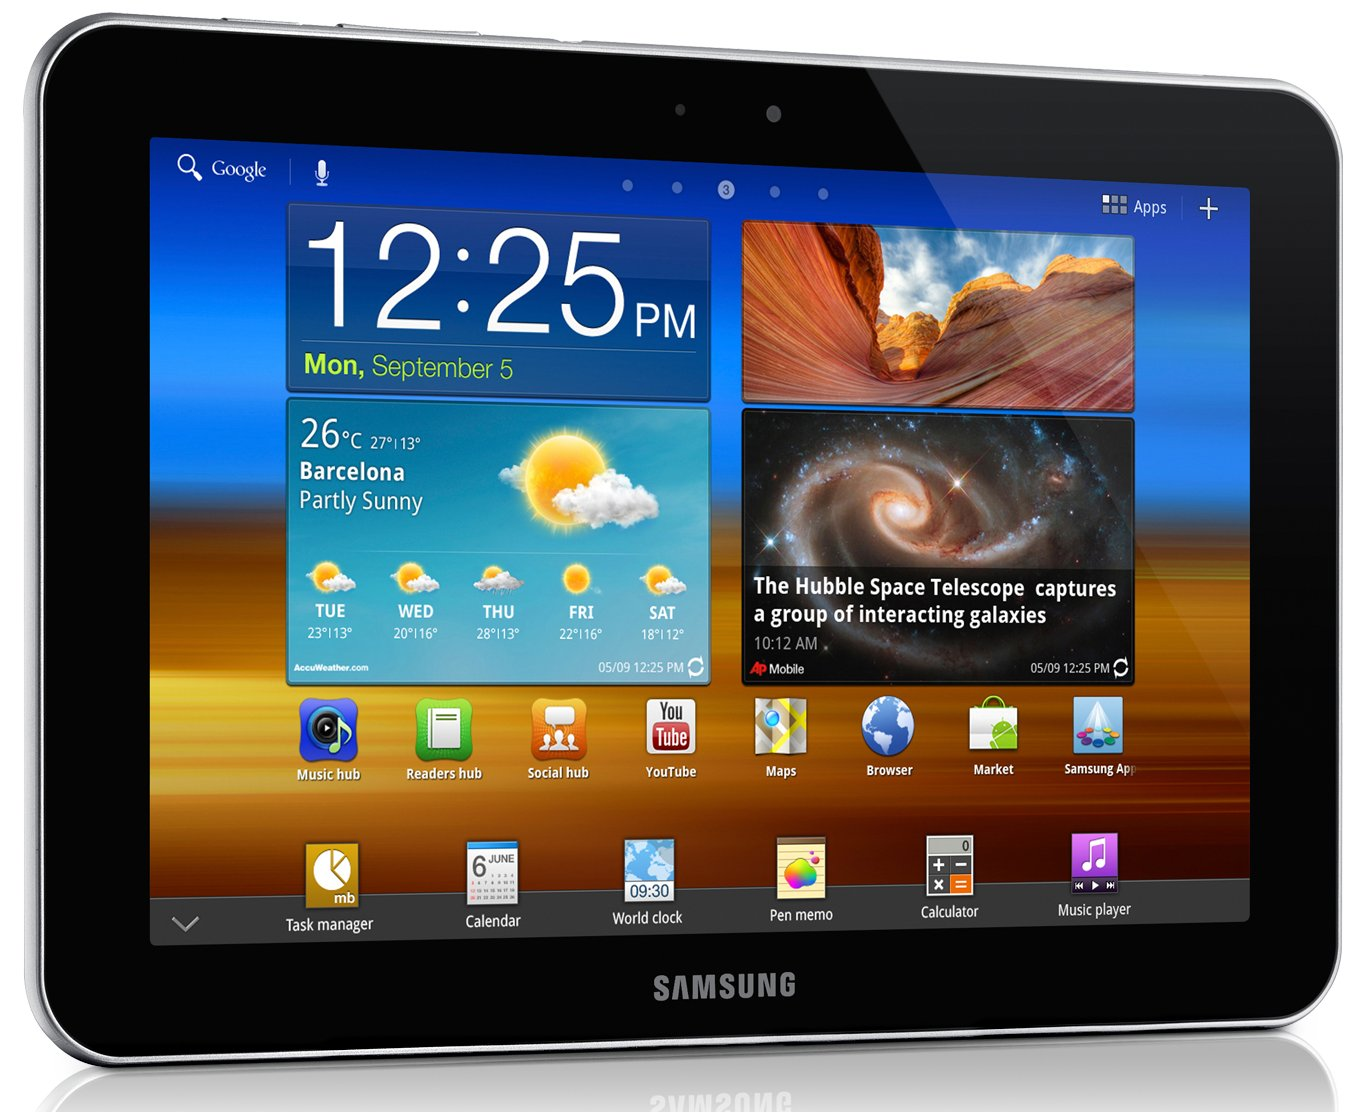 Samsung Galaxy Tablet Google image from http://images.samsung.com/is/image/samsung/sg_GT-P7300UWAXSP_002_Left-Angle?$Download-Source$